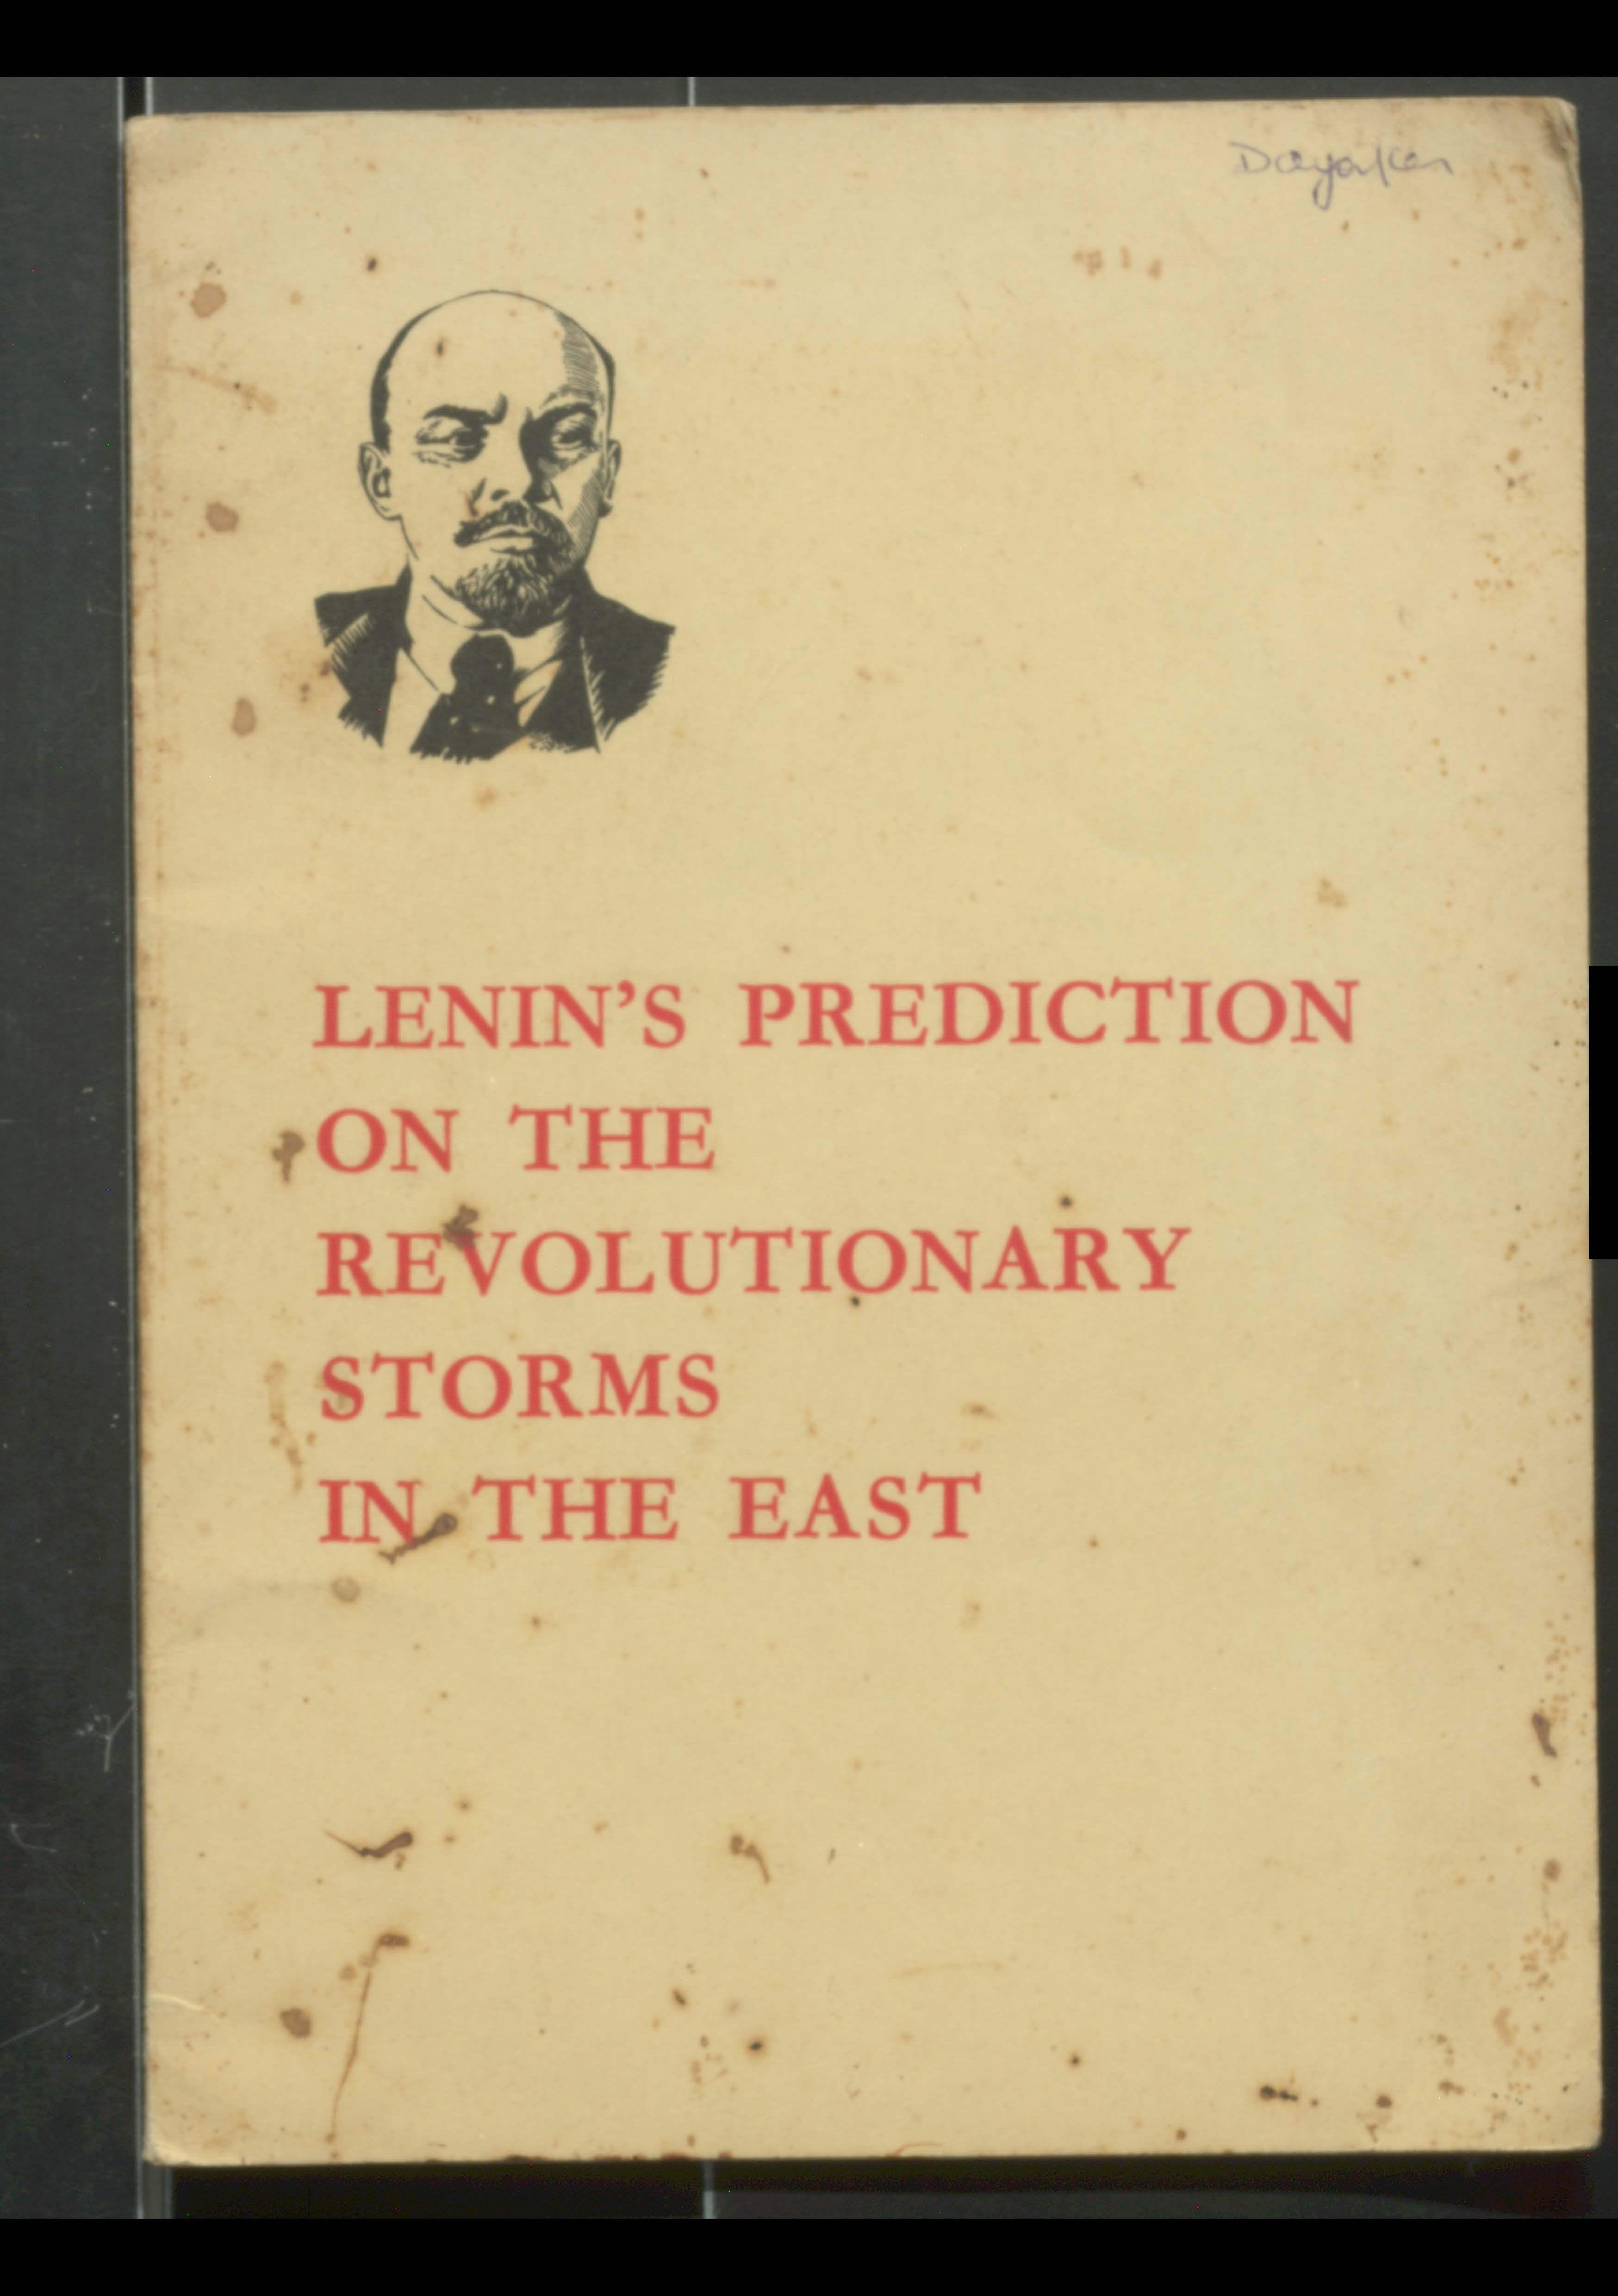 Lenin's Prediction on the Revolutionary storms in the East